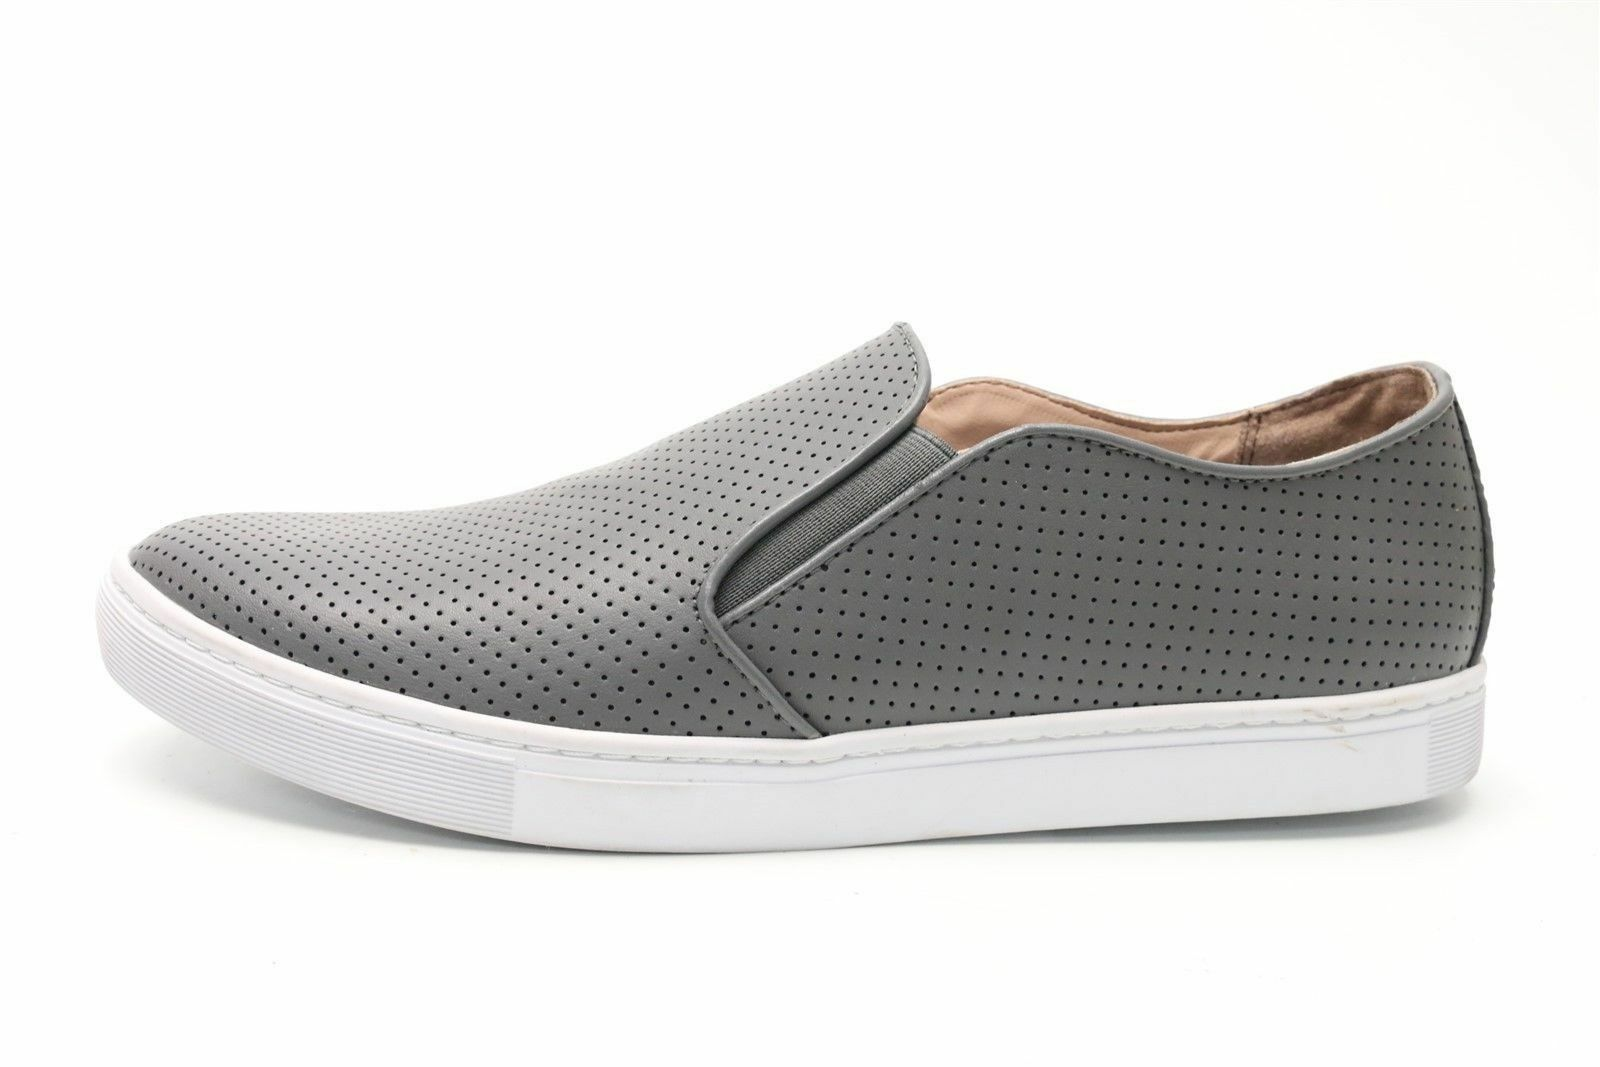 PUBLIC OPINION MENS SLIP ONS GREY LEATHER UPPER New SZ 11.5 M